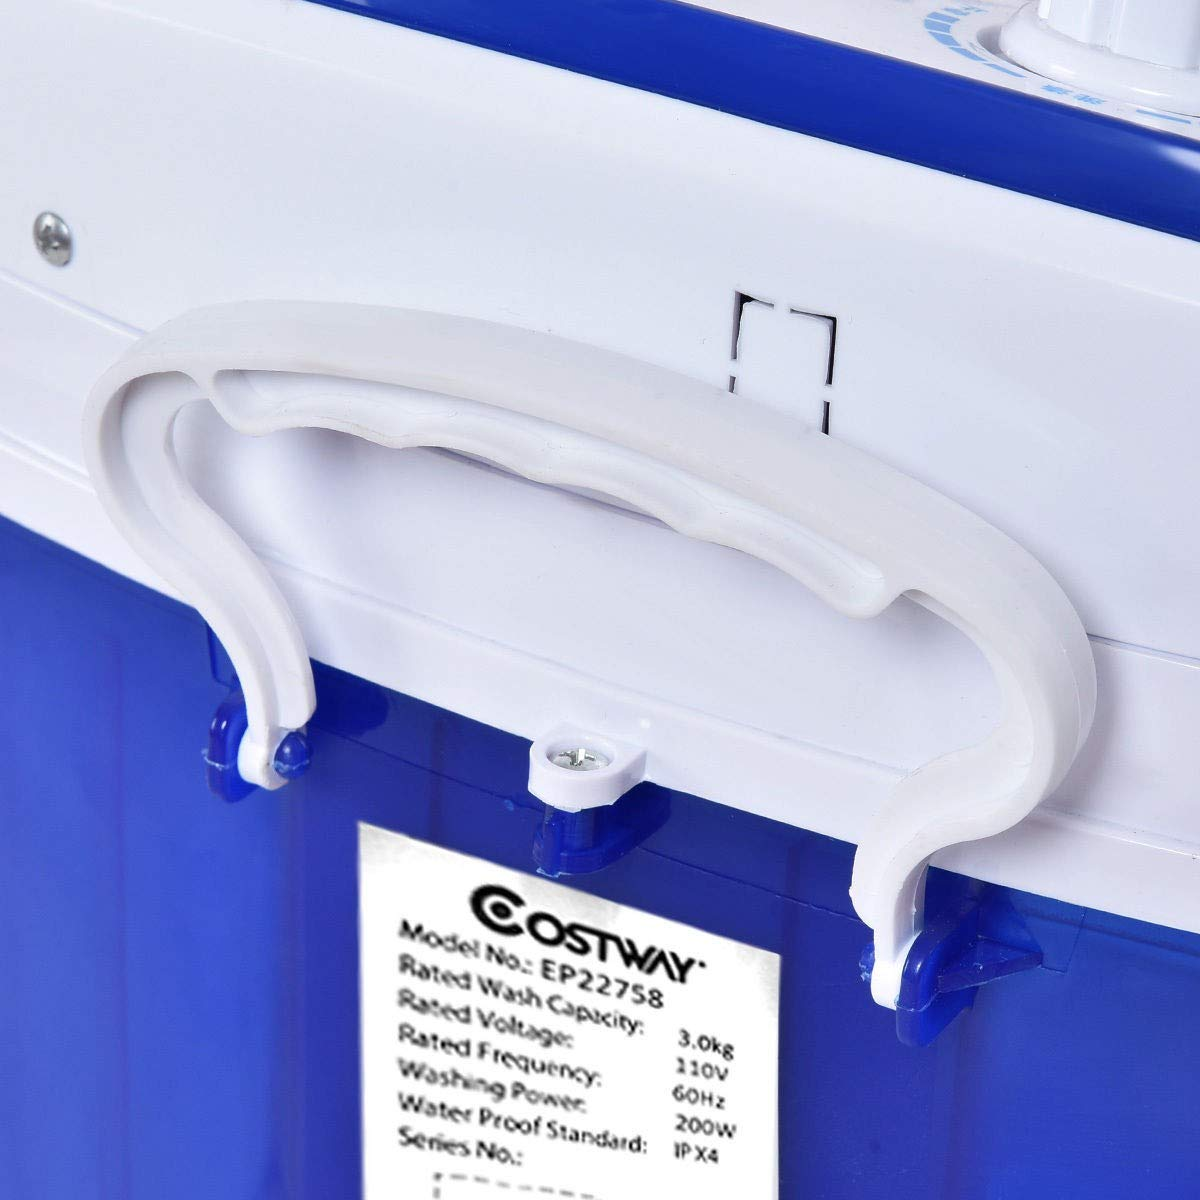 MD Group Mini Portable Washer Washing Machine by MD Group (Image #9)